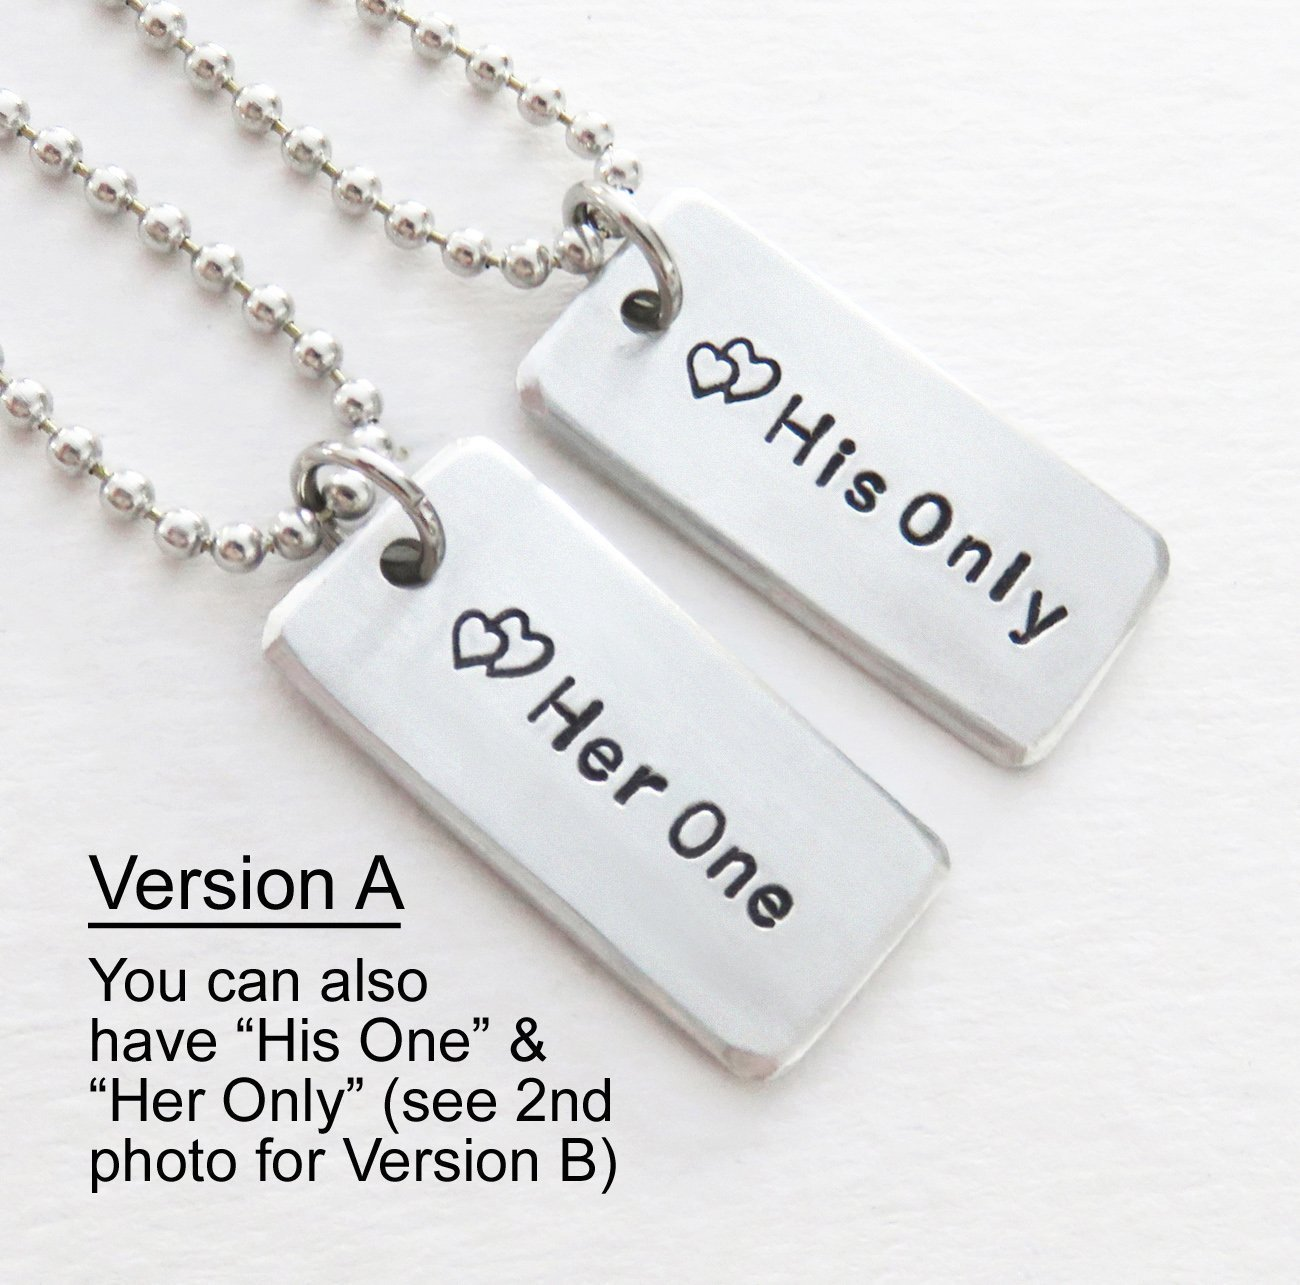 Amazon.com: Her One His Only (or His One Her Only) pendants charms ...